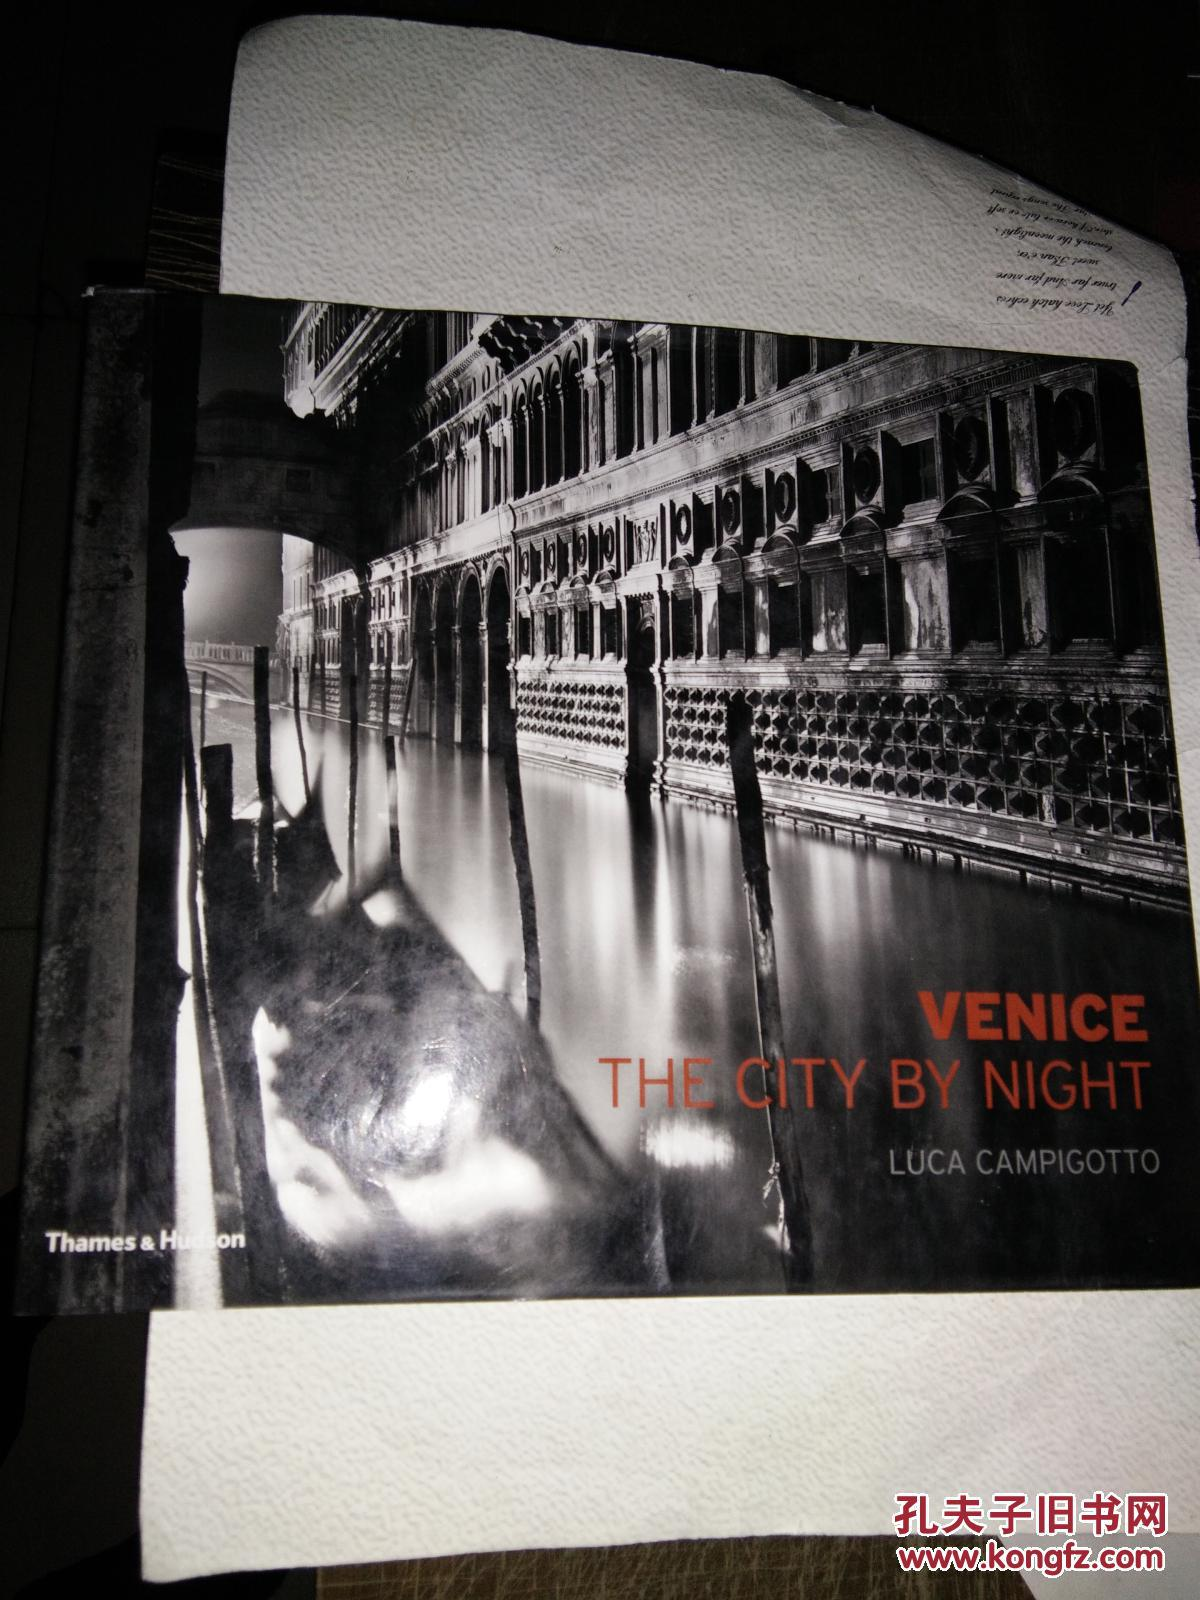 VENICE---THE CITY BY NIGHT威尼斯的夜晚